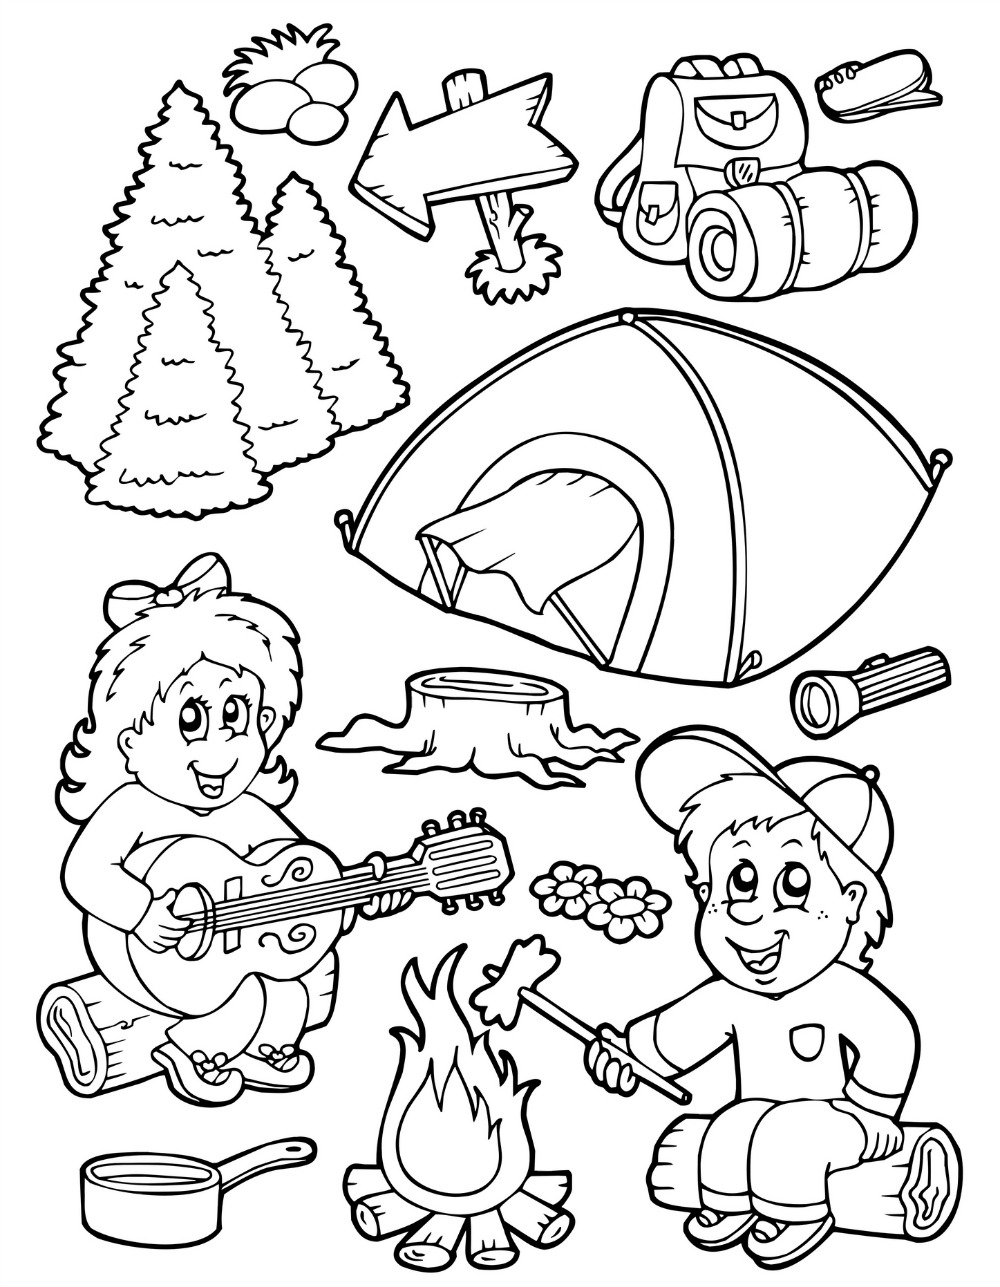 camping coloring pages for kids camping coloring pages best coloring pages for kids pages for kids camping coloring